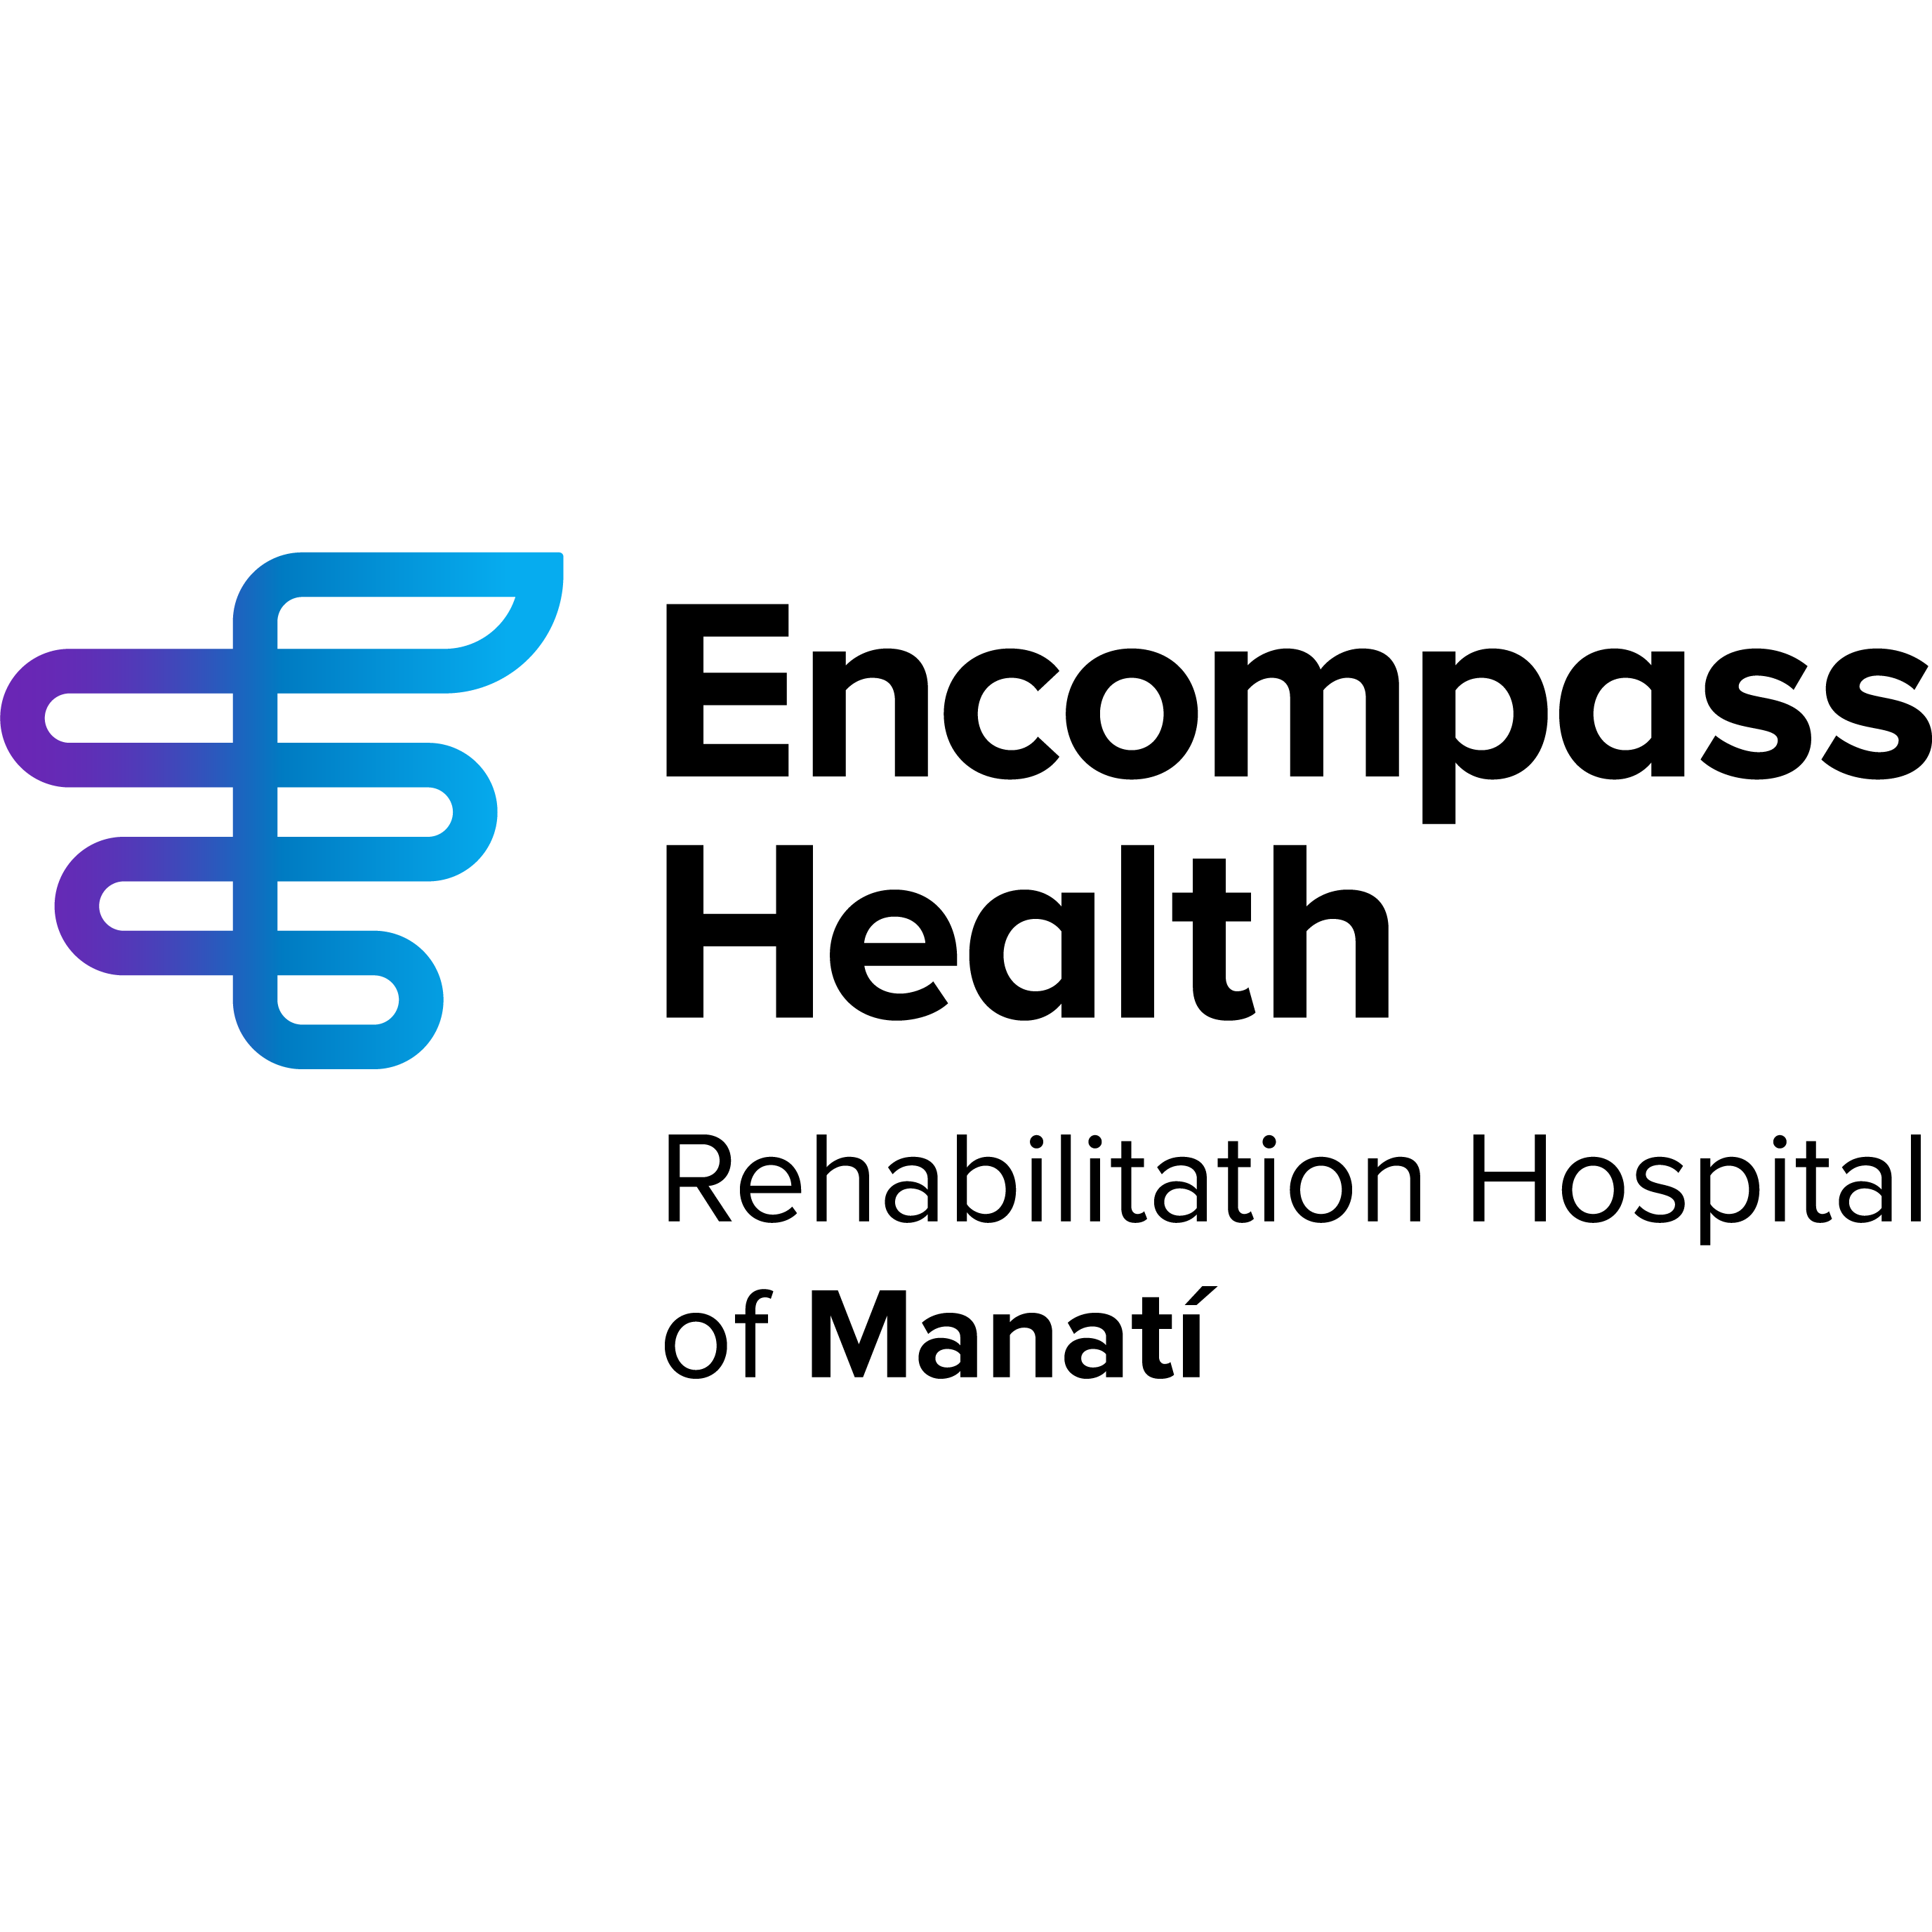 Encompass Health Rehabilitation Hospital of Manati